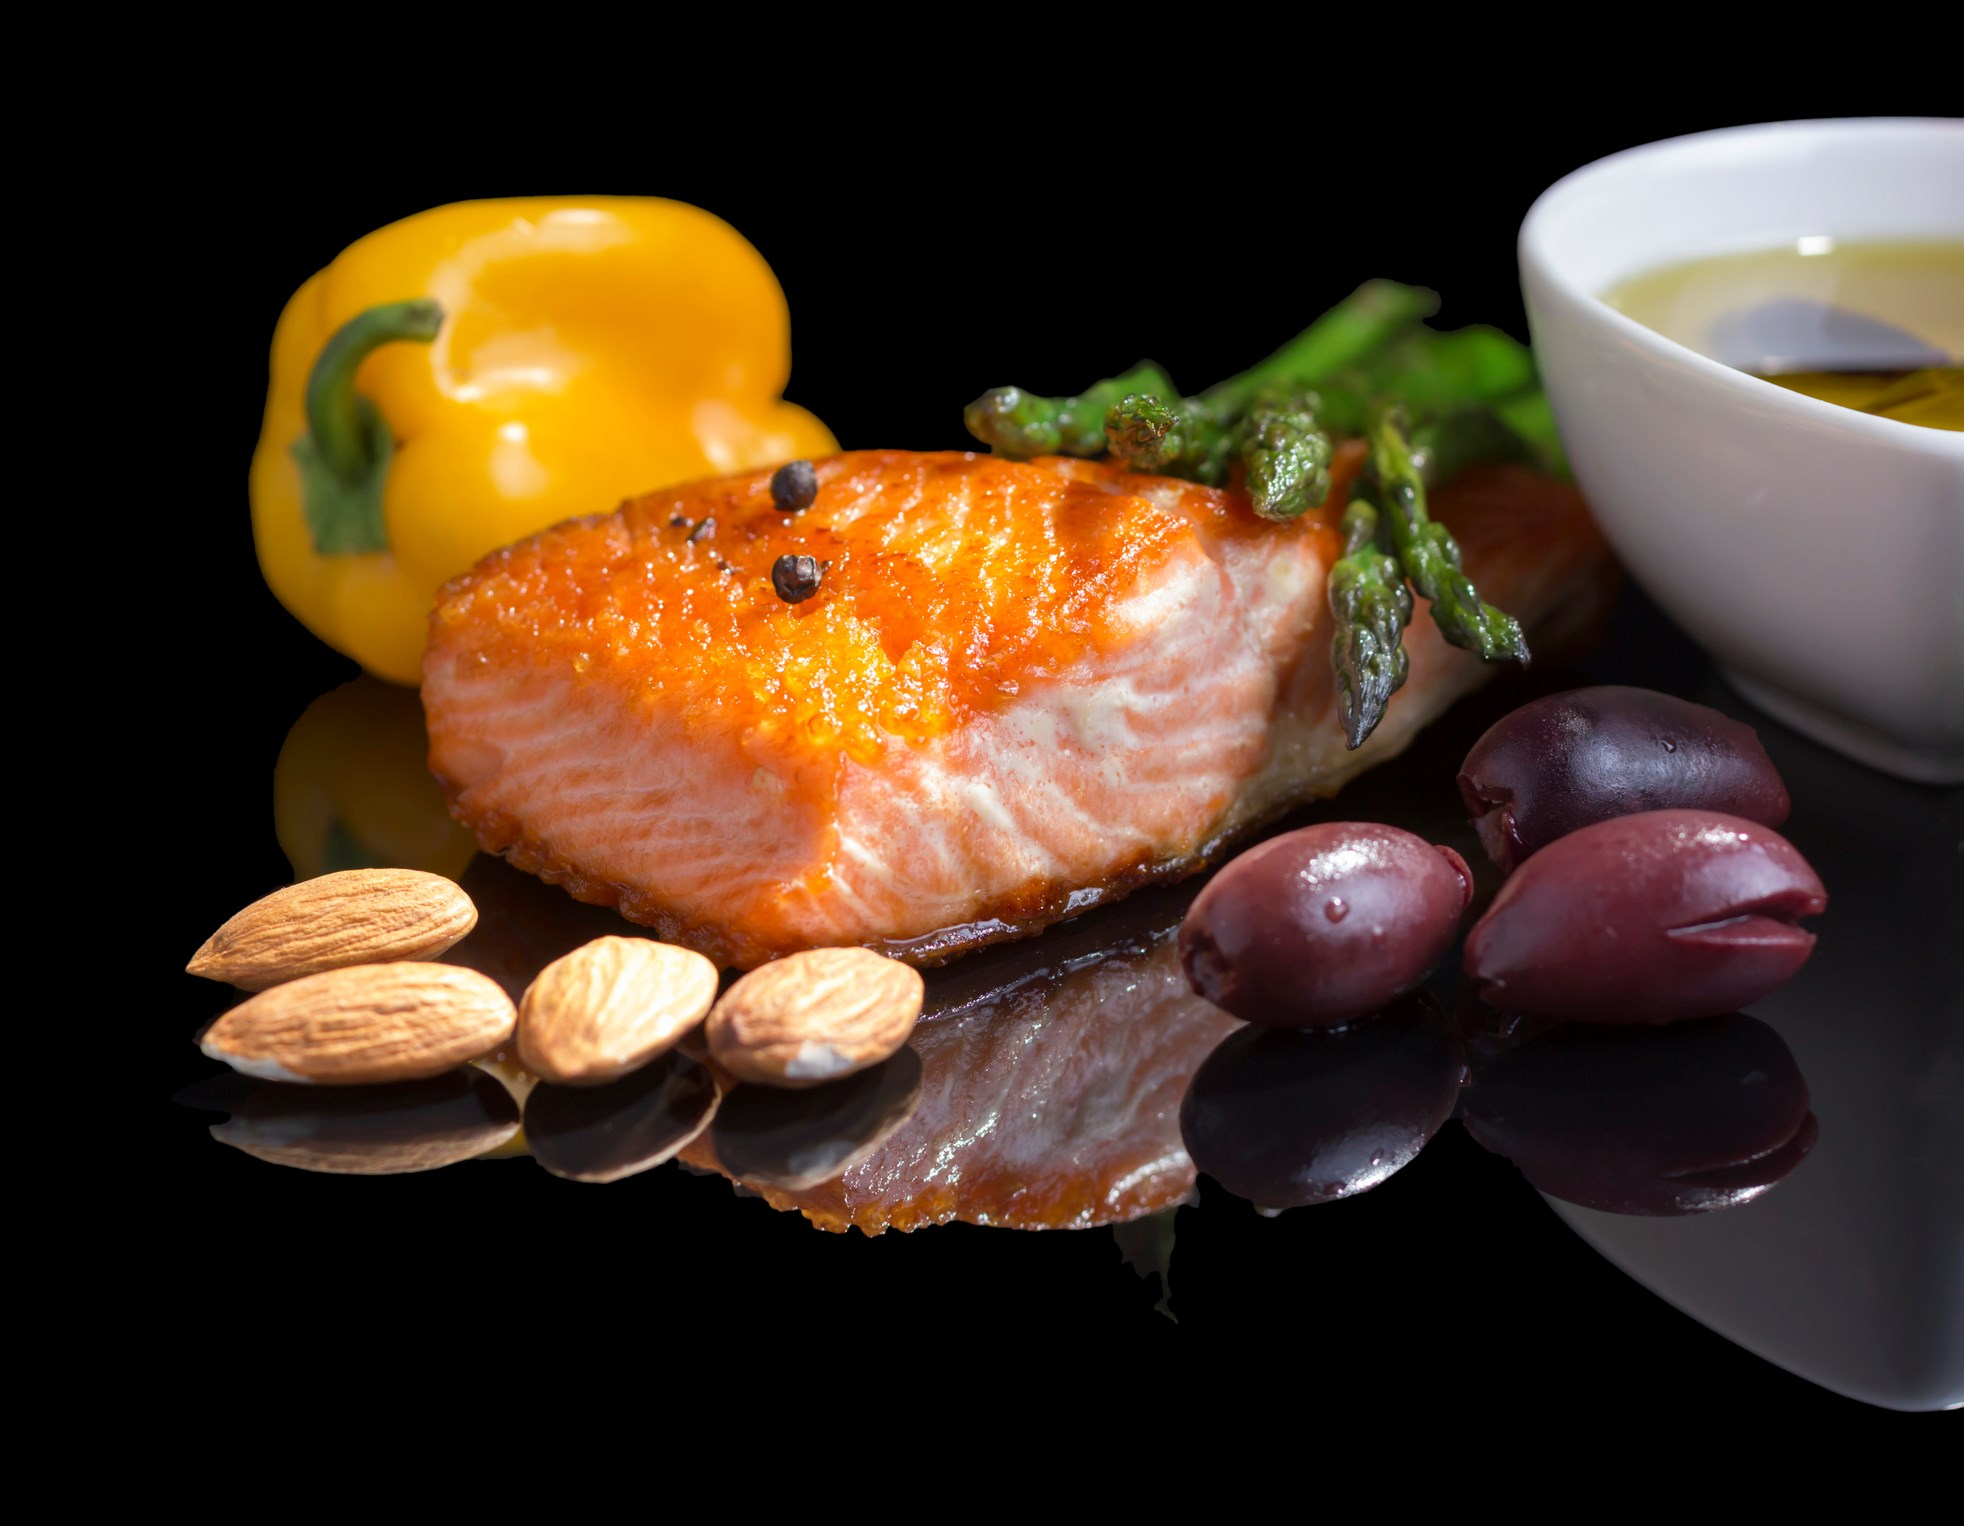 Earlier findings linked consumption of anti-inflammatory foods with reduced inflammatory markers.